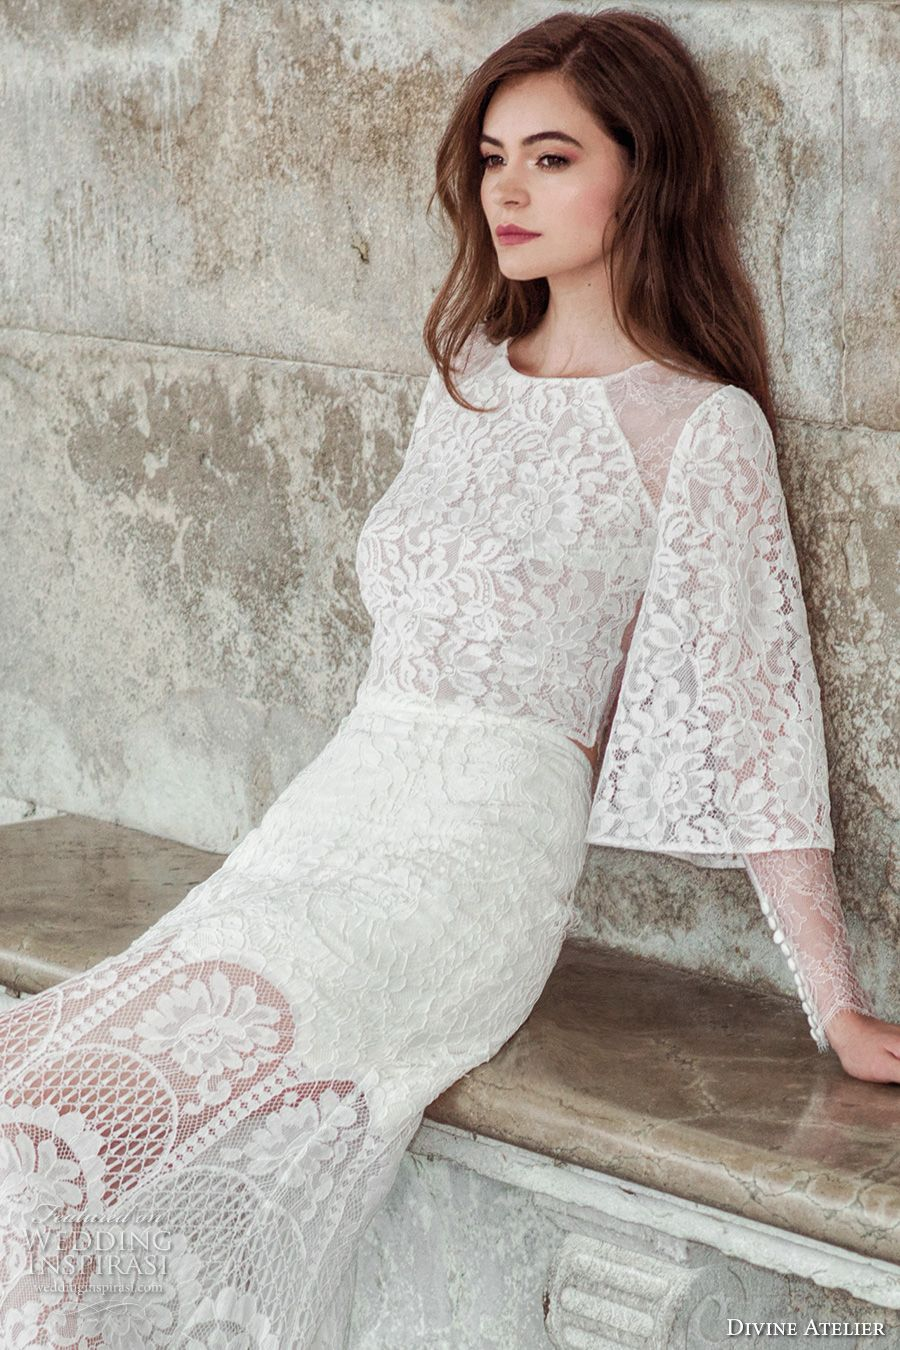 Divine atelier wedding dresses lace skirt atelier and bohemian